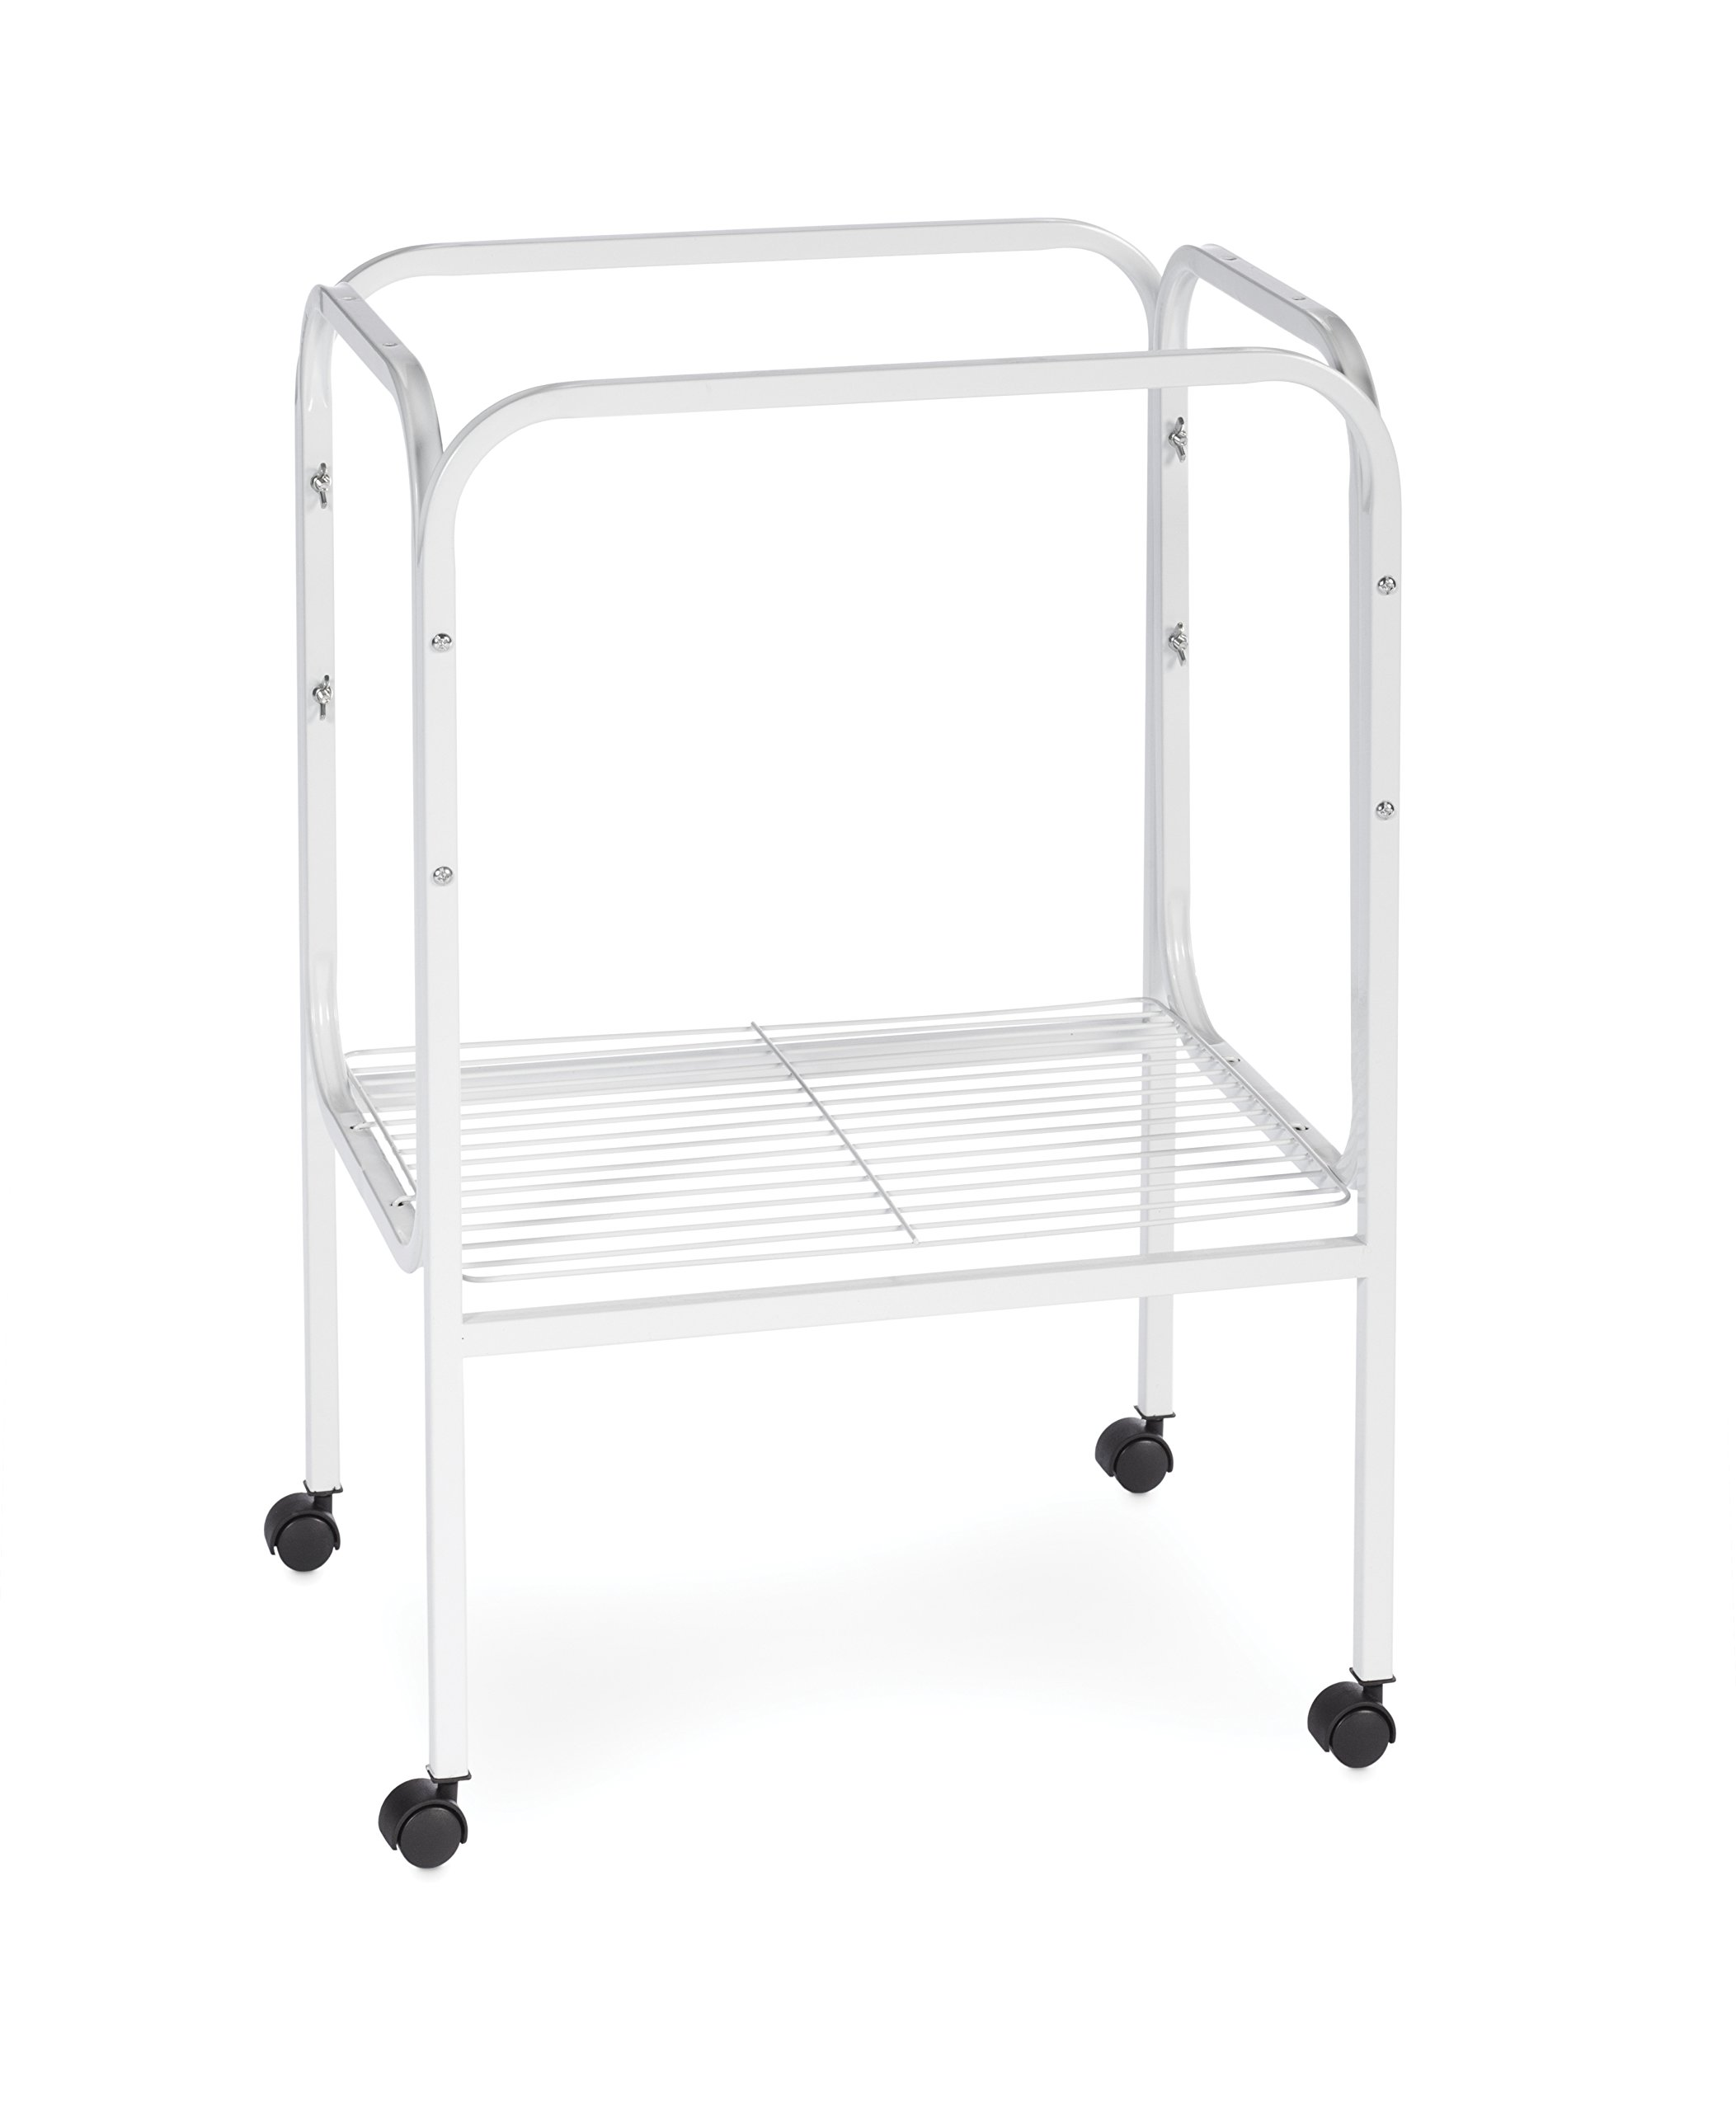 Prevue Pet Products SP444W Bird Cage Stand with Shelf, White by Prevue Pet Products